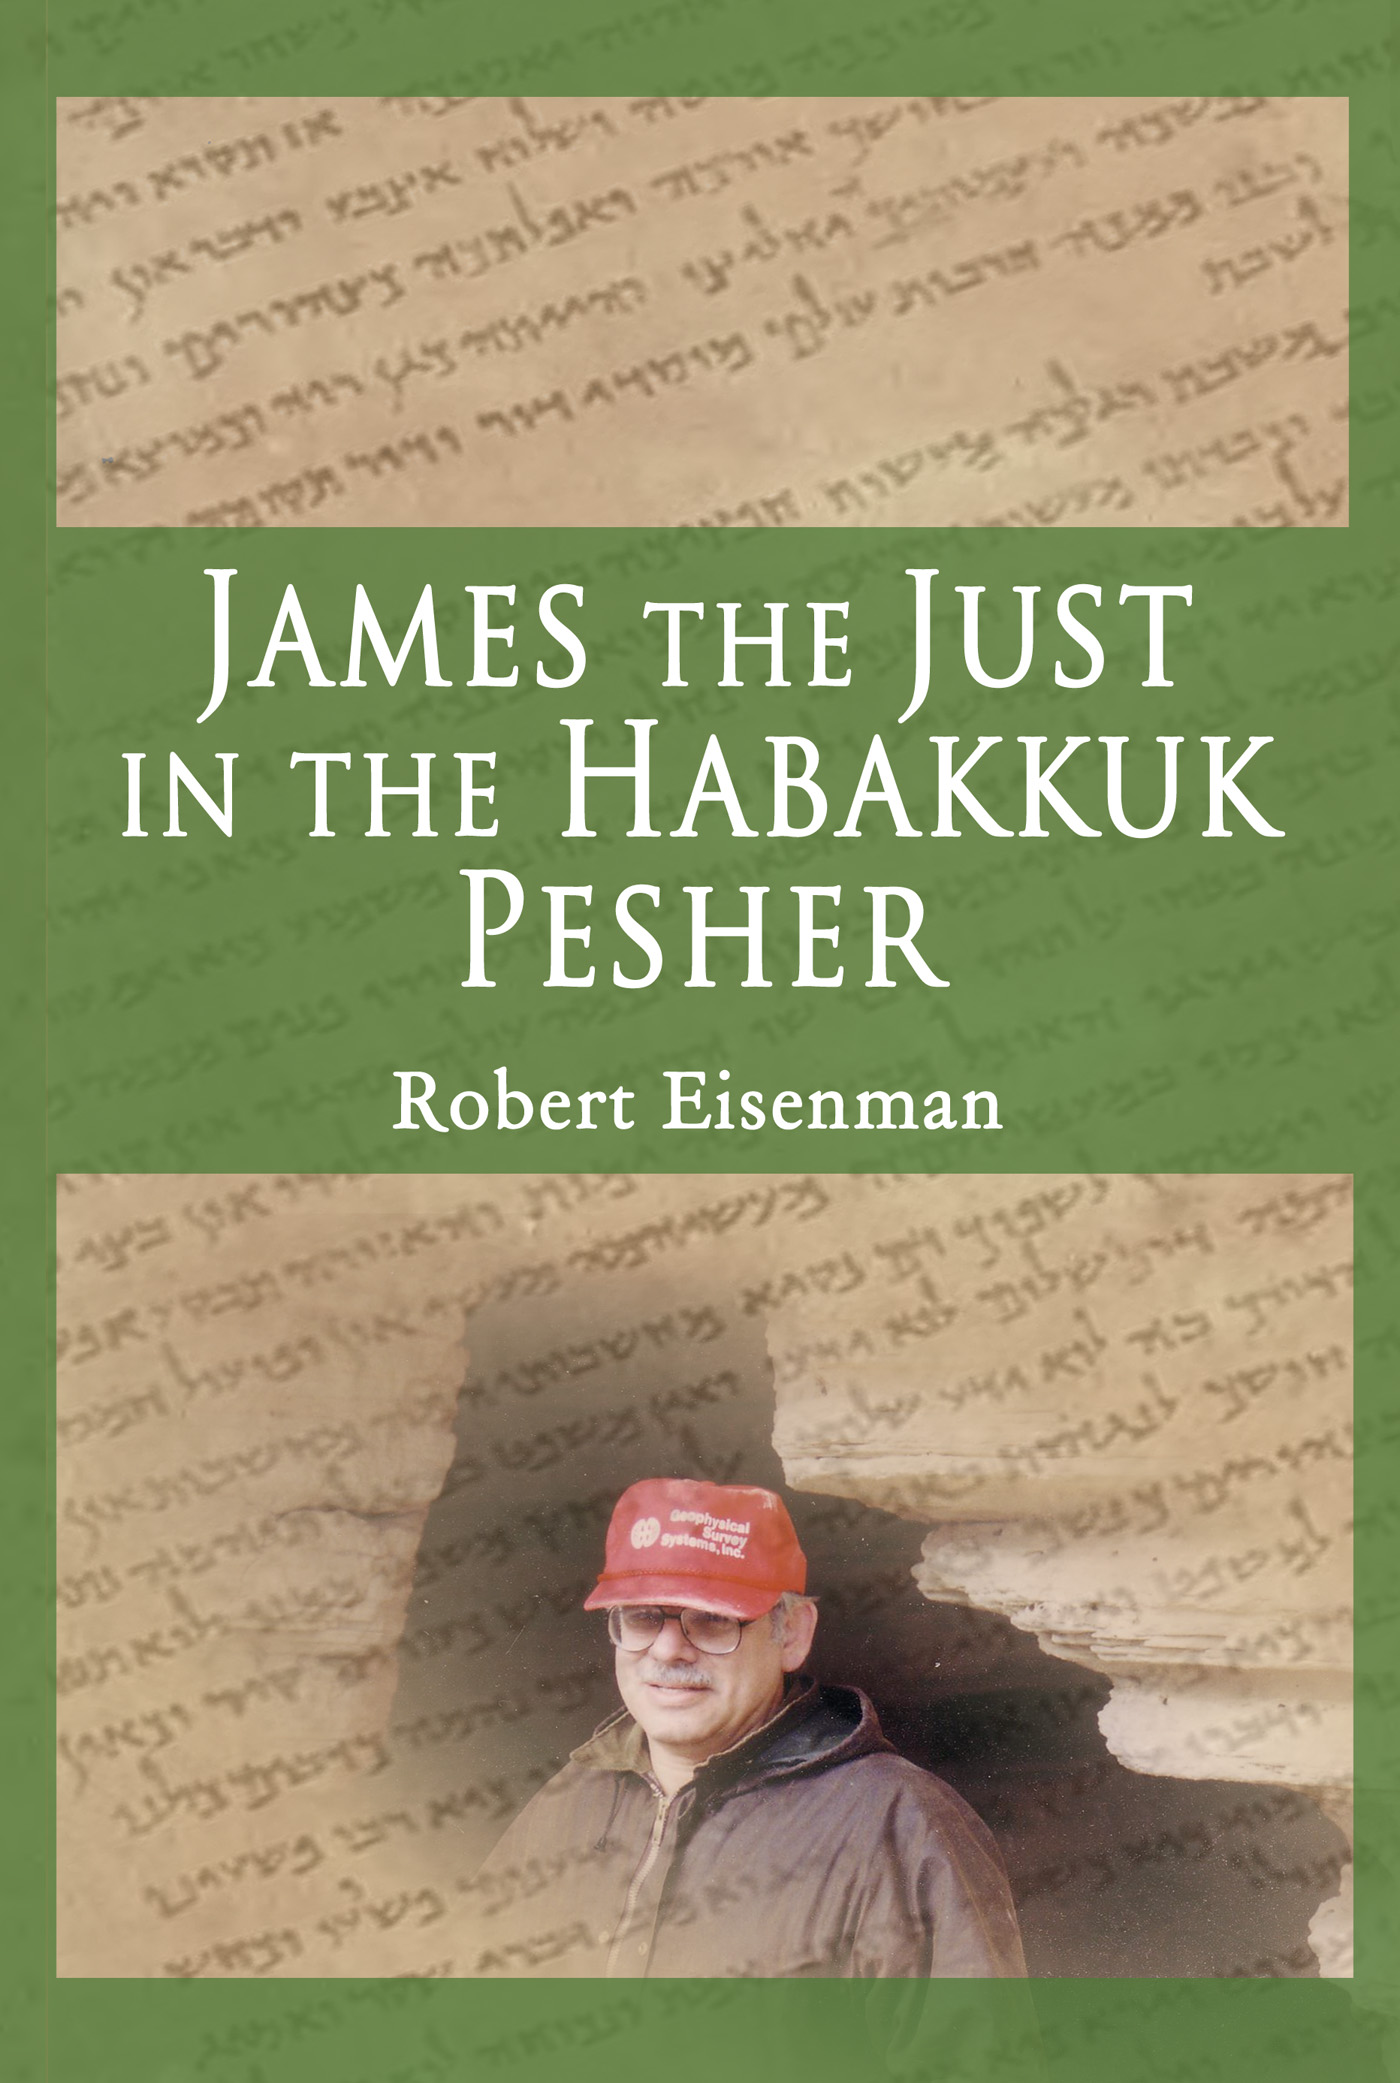 James the Just in the Habakkuk Pesher